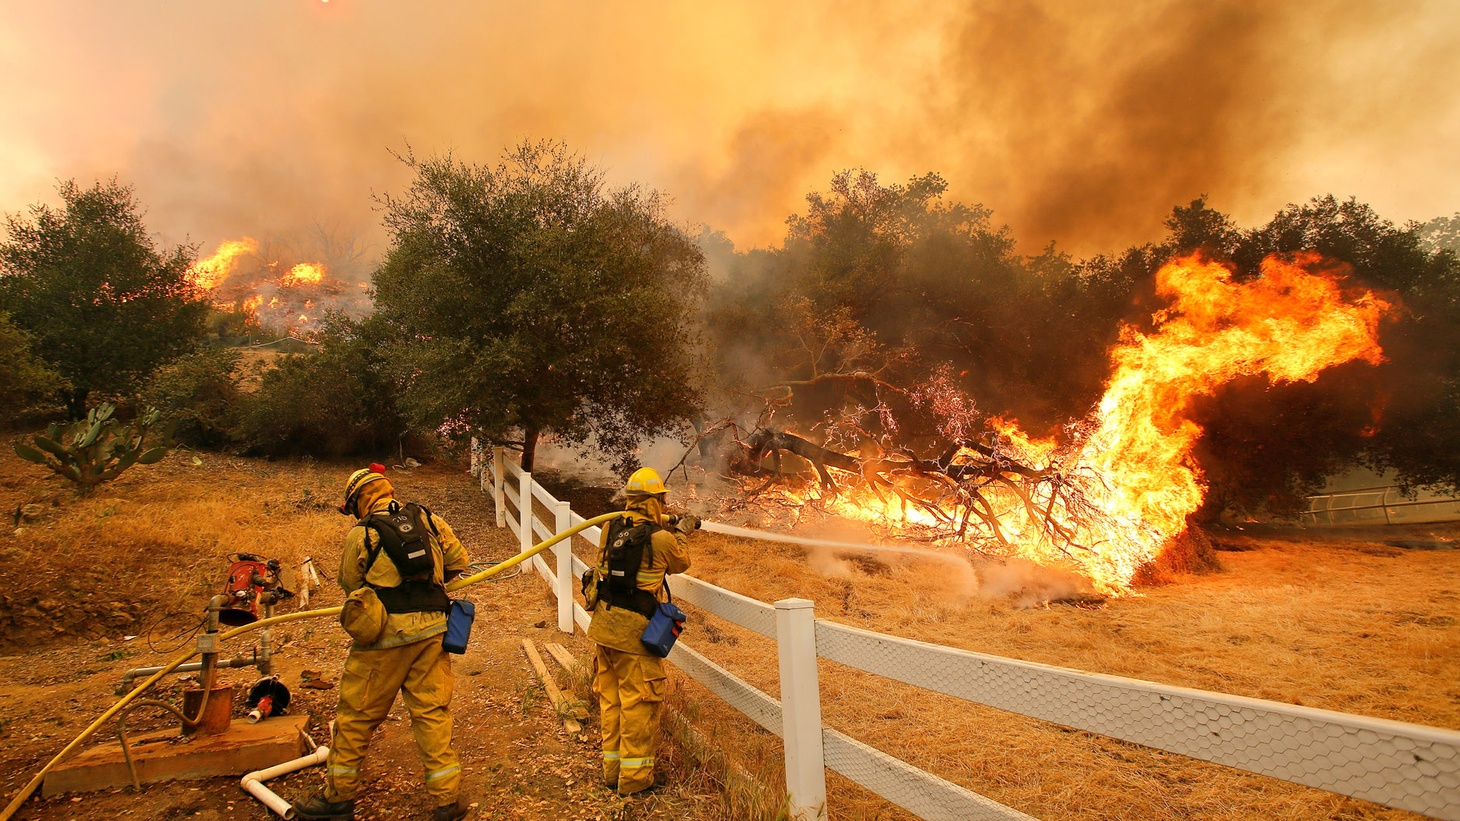 Interior Secretary Ryan Zinke has admitted that climate change is a factor in this year's massive wildfires. But President Trump continues pushing a disinformation campaign.